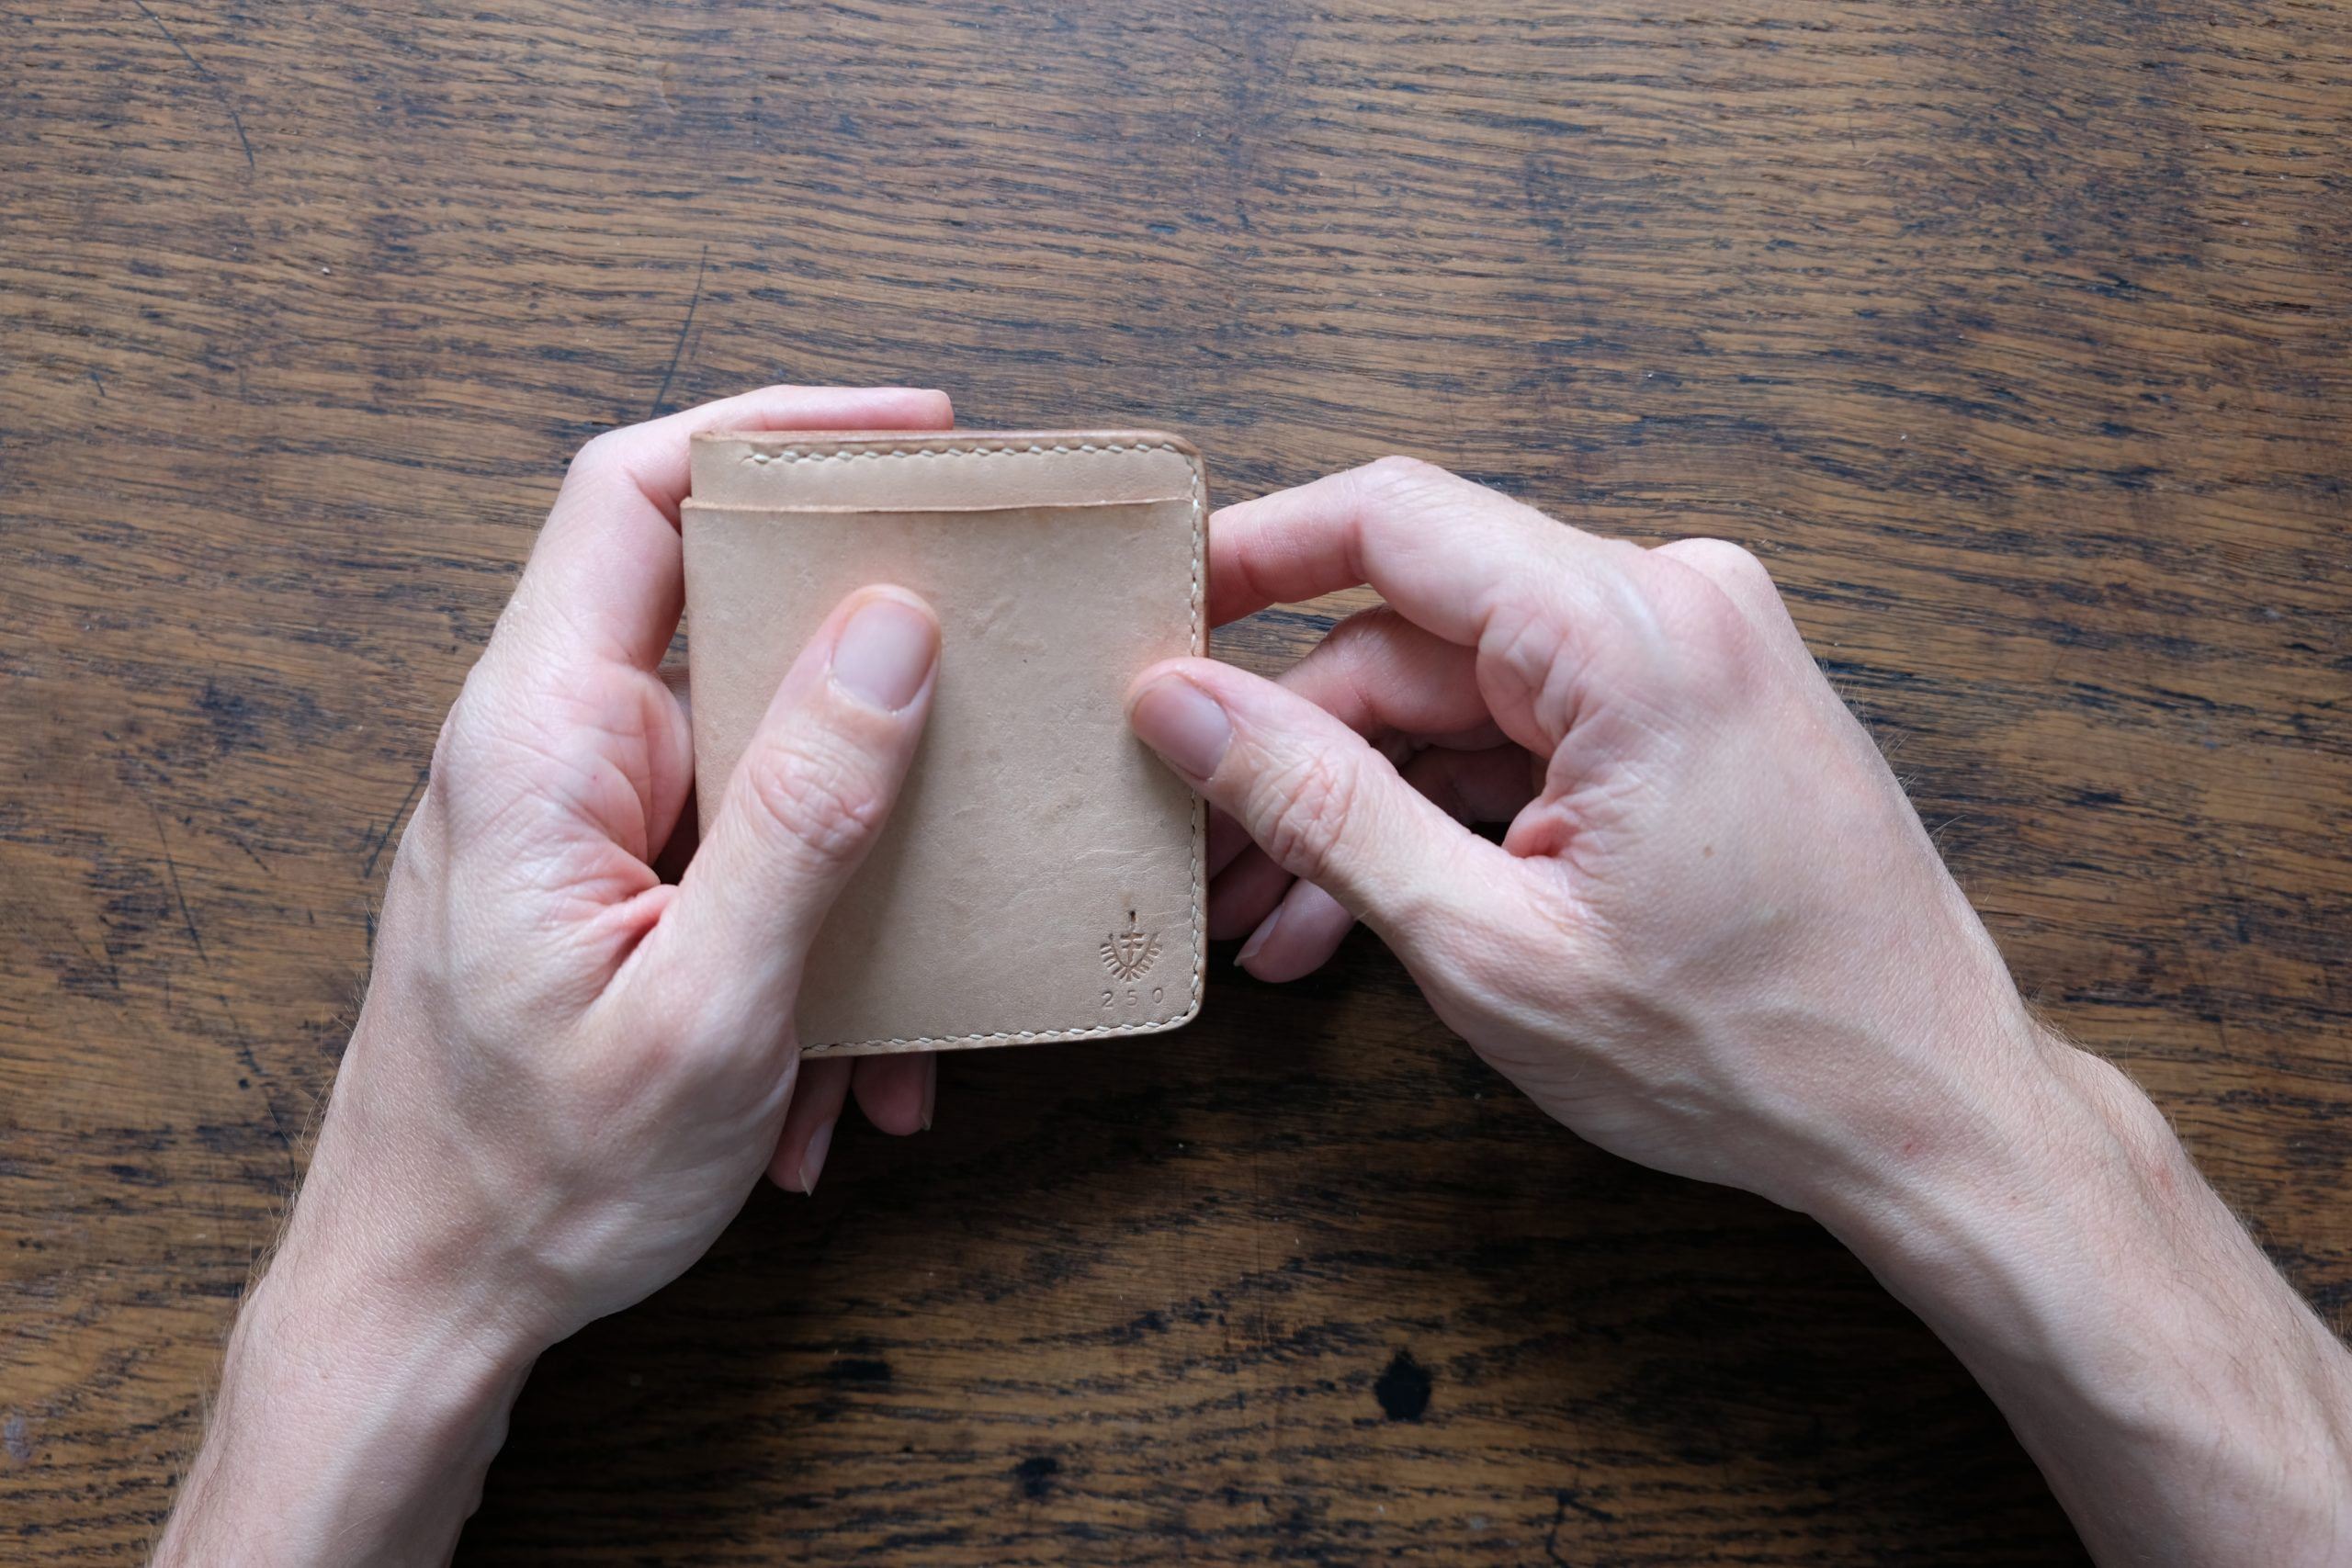 lerif designs small bifold leather wallet in natural on wood background held by hands